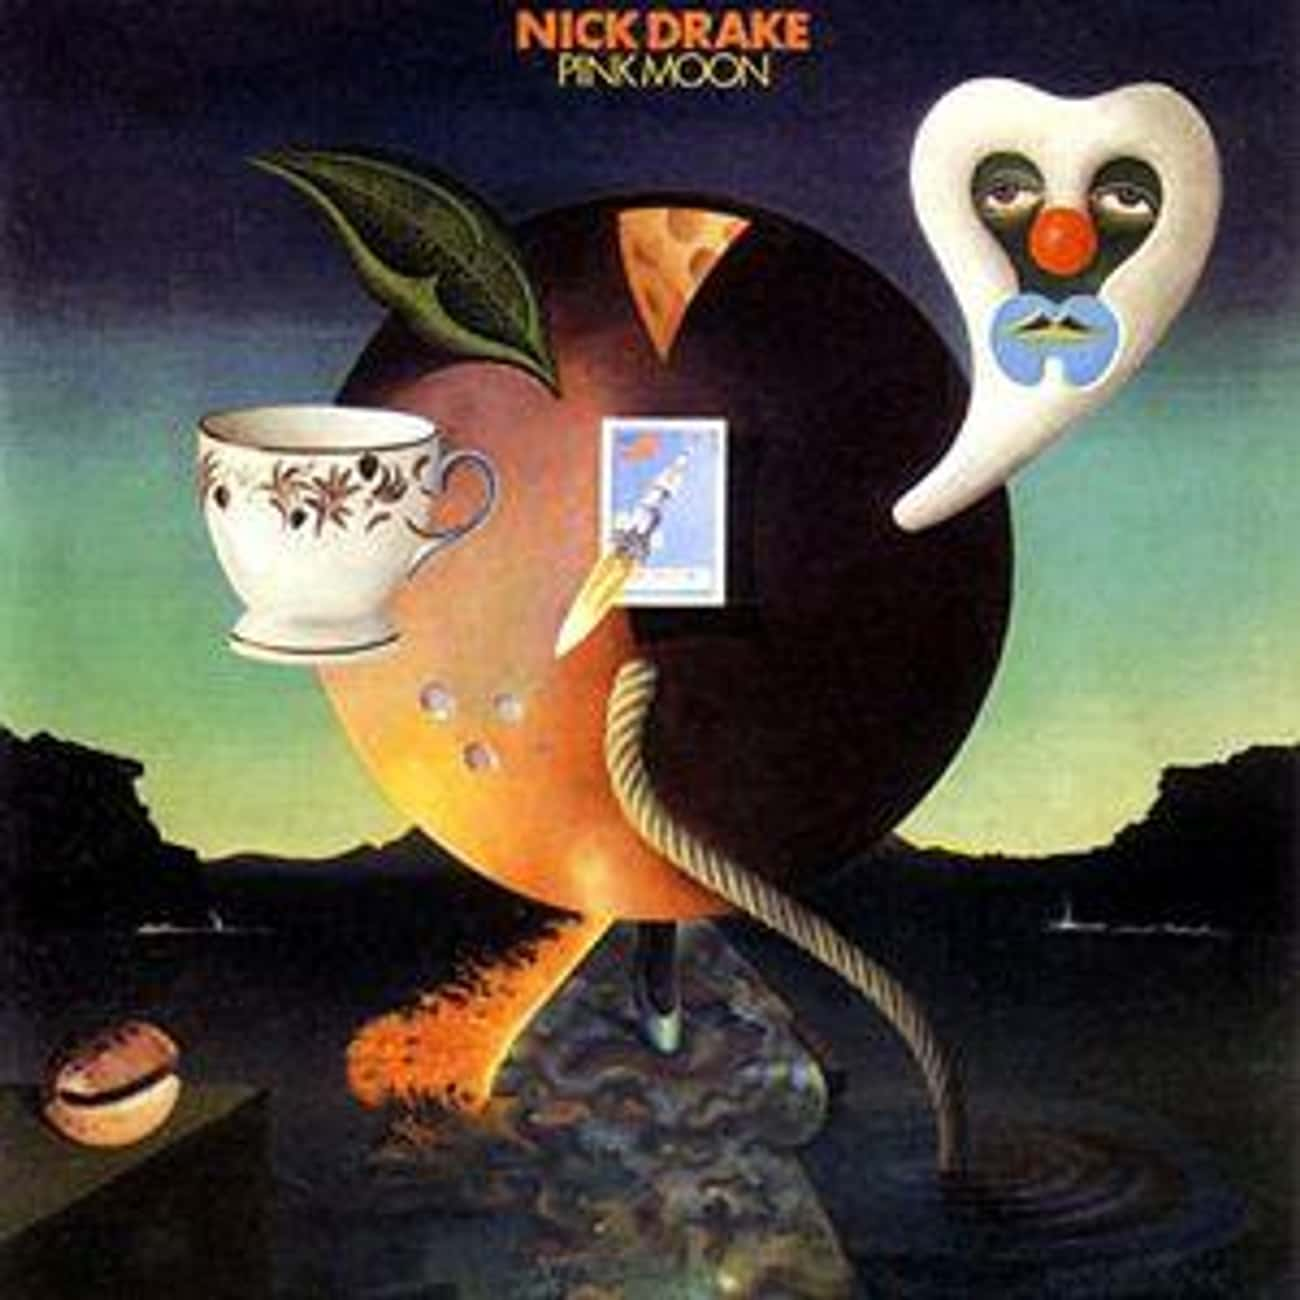 Nick Drake - 'Pink Moon&#3 is listed (or ranked) 3 on the list The 12 Strangest Albums With Rabid Cult Followings